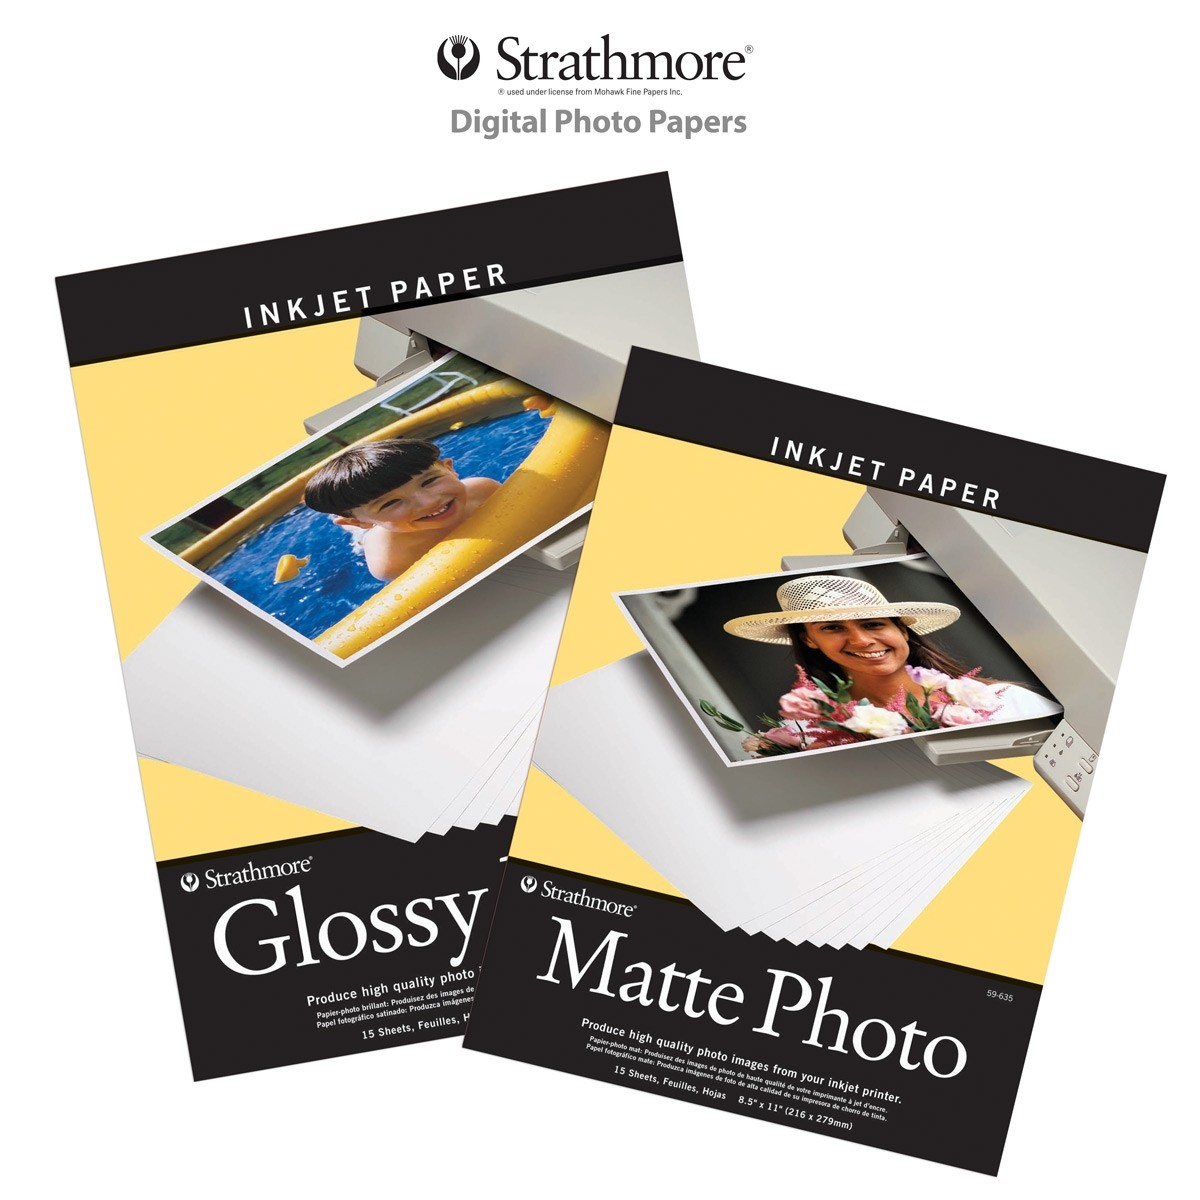 Strathmore Digital Photo Papers